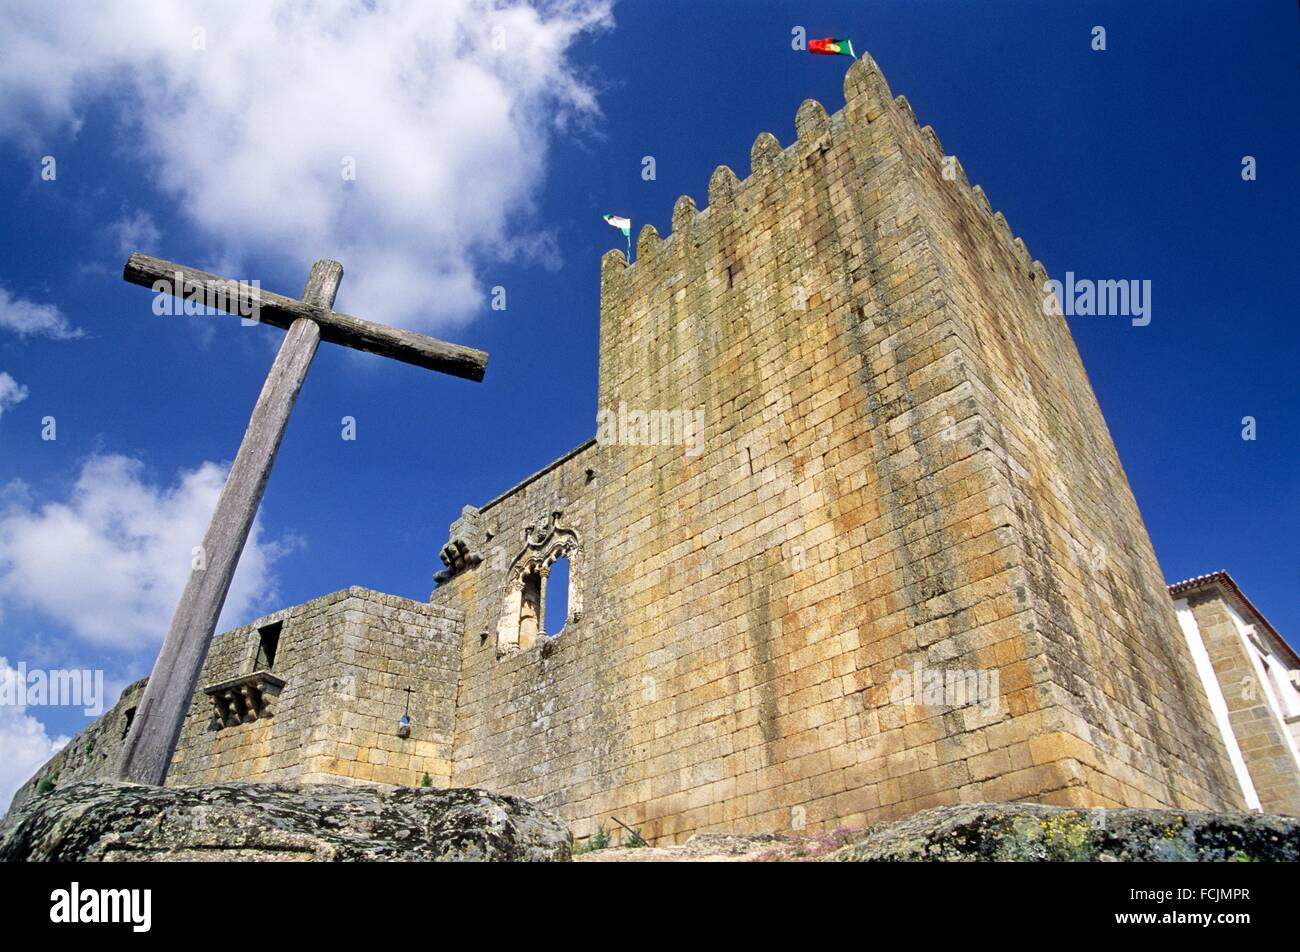 Castle of Belmonte, birthplace of Pedro Alvares Cabral 1467-1520, famous Portuguese navigator and explorer, Portugal, - Stock Image